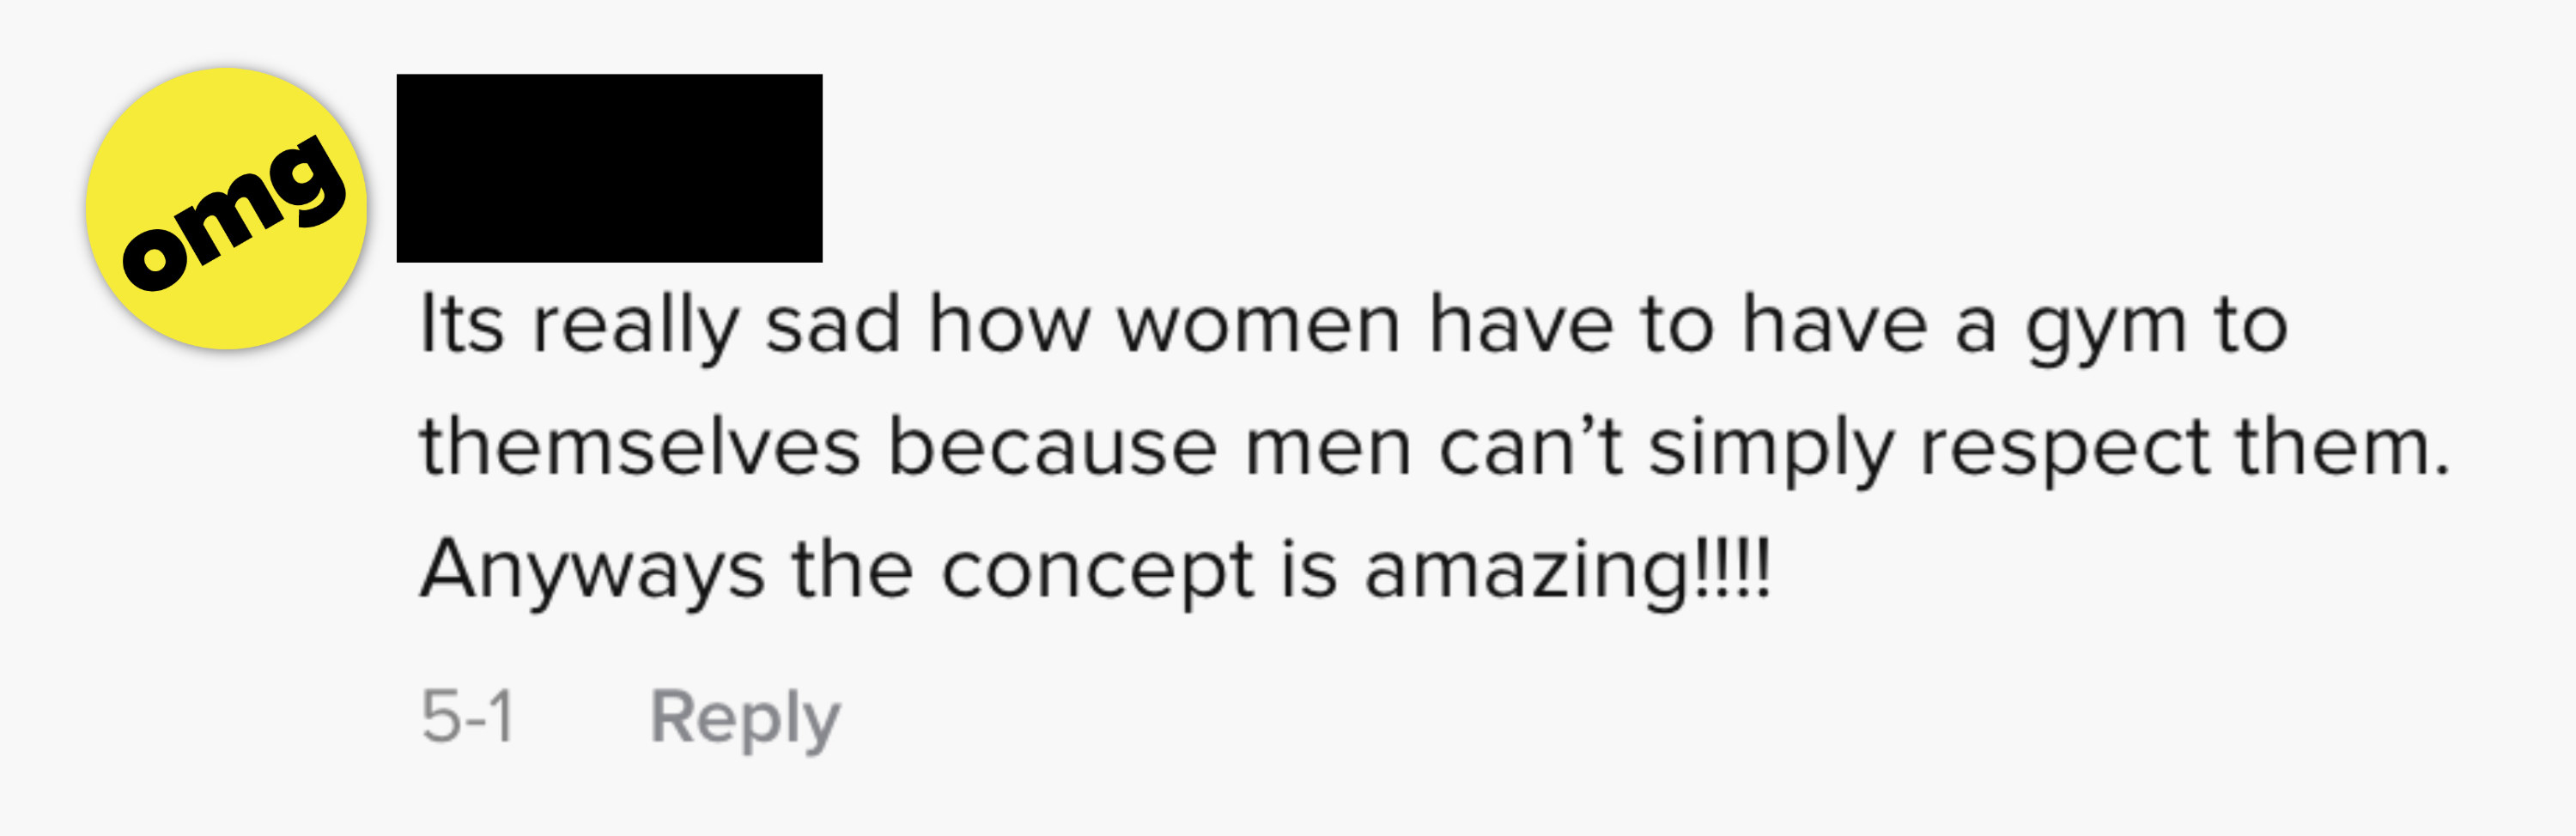 Its really sad how women have to have a gym to themselves because men can't simply respect them. Anyways the concept is amazing!!!